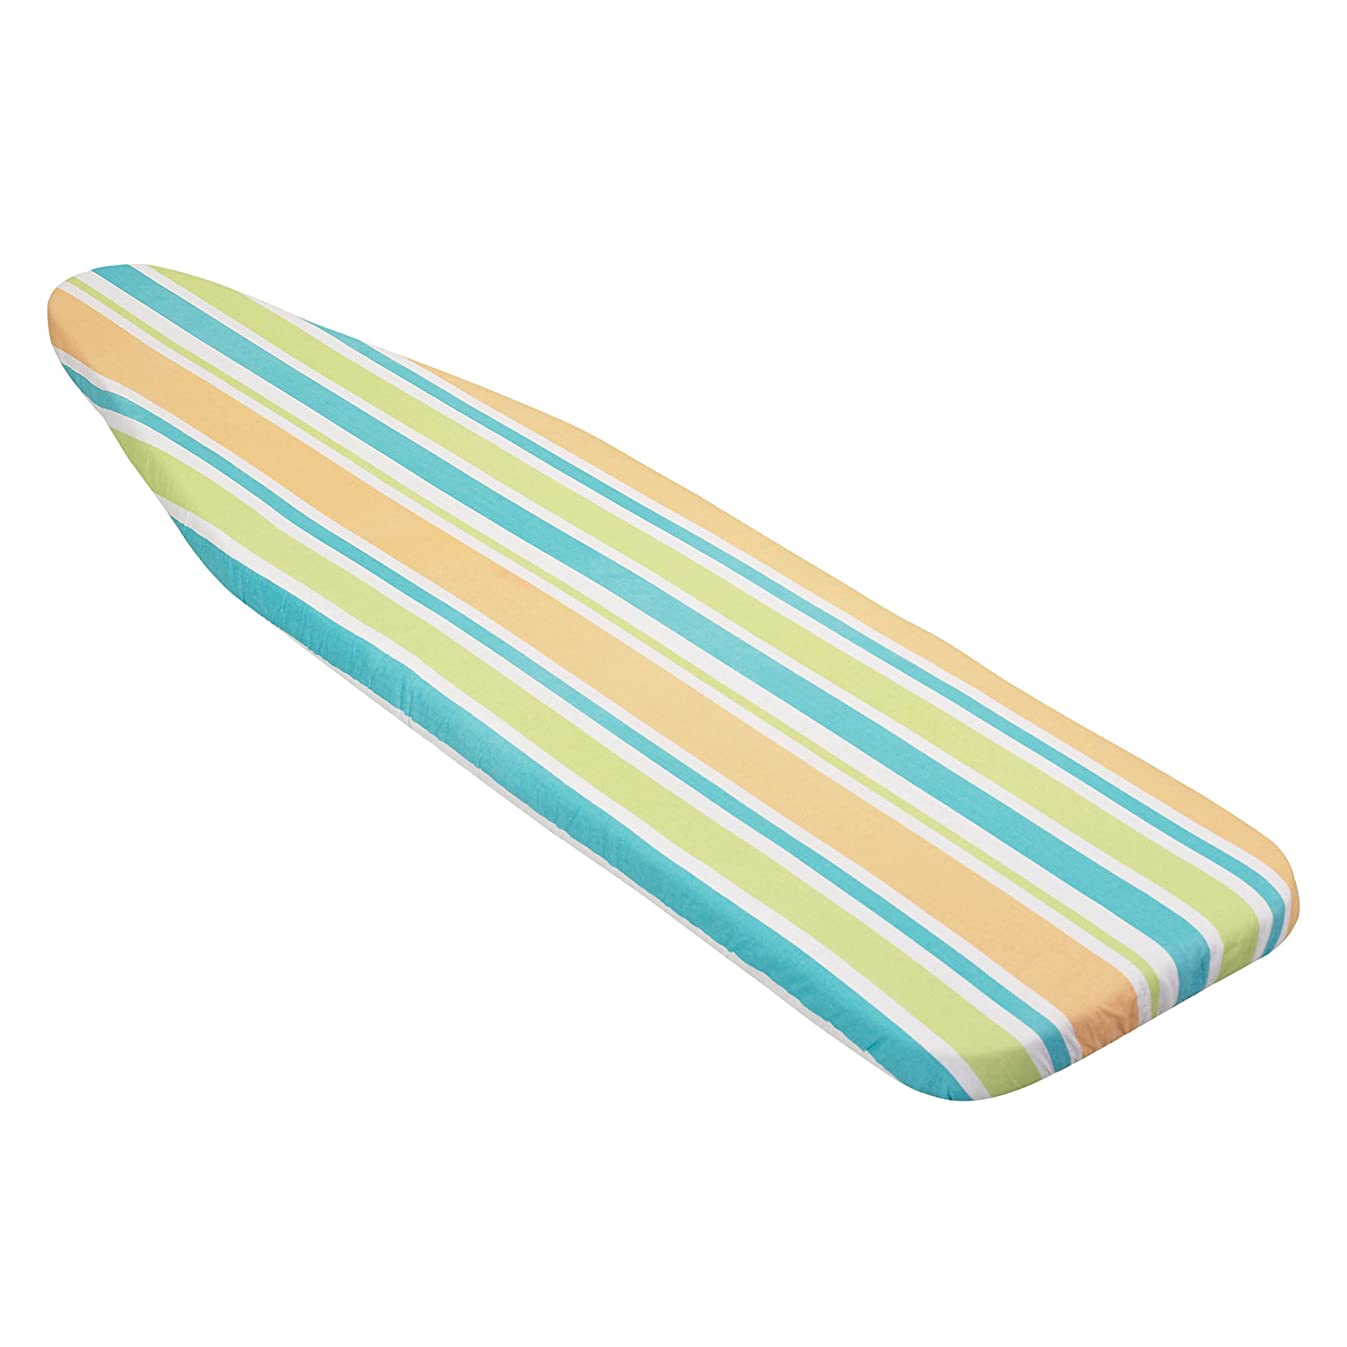 Honey-Can-Do IBC-01897 Premium Ironing Board Cover- HCD Stripes